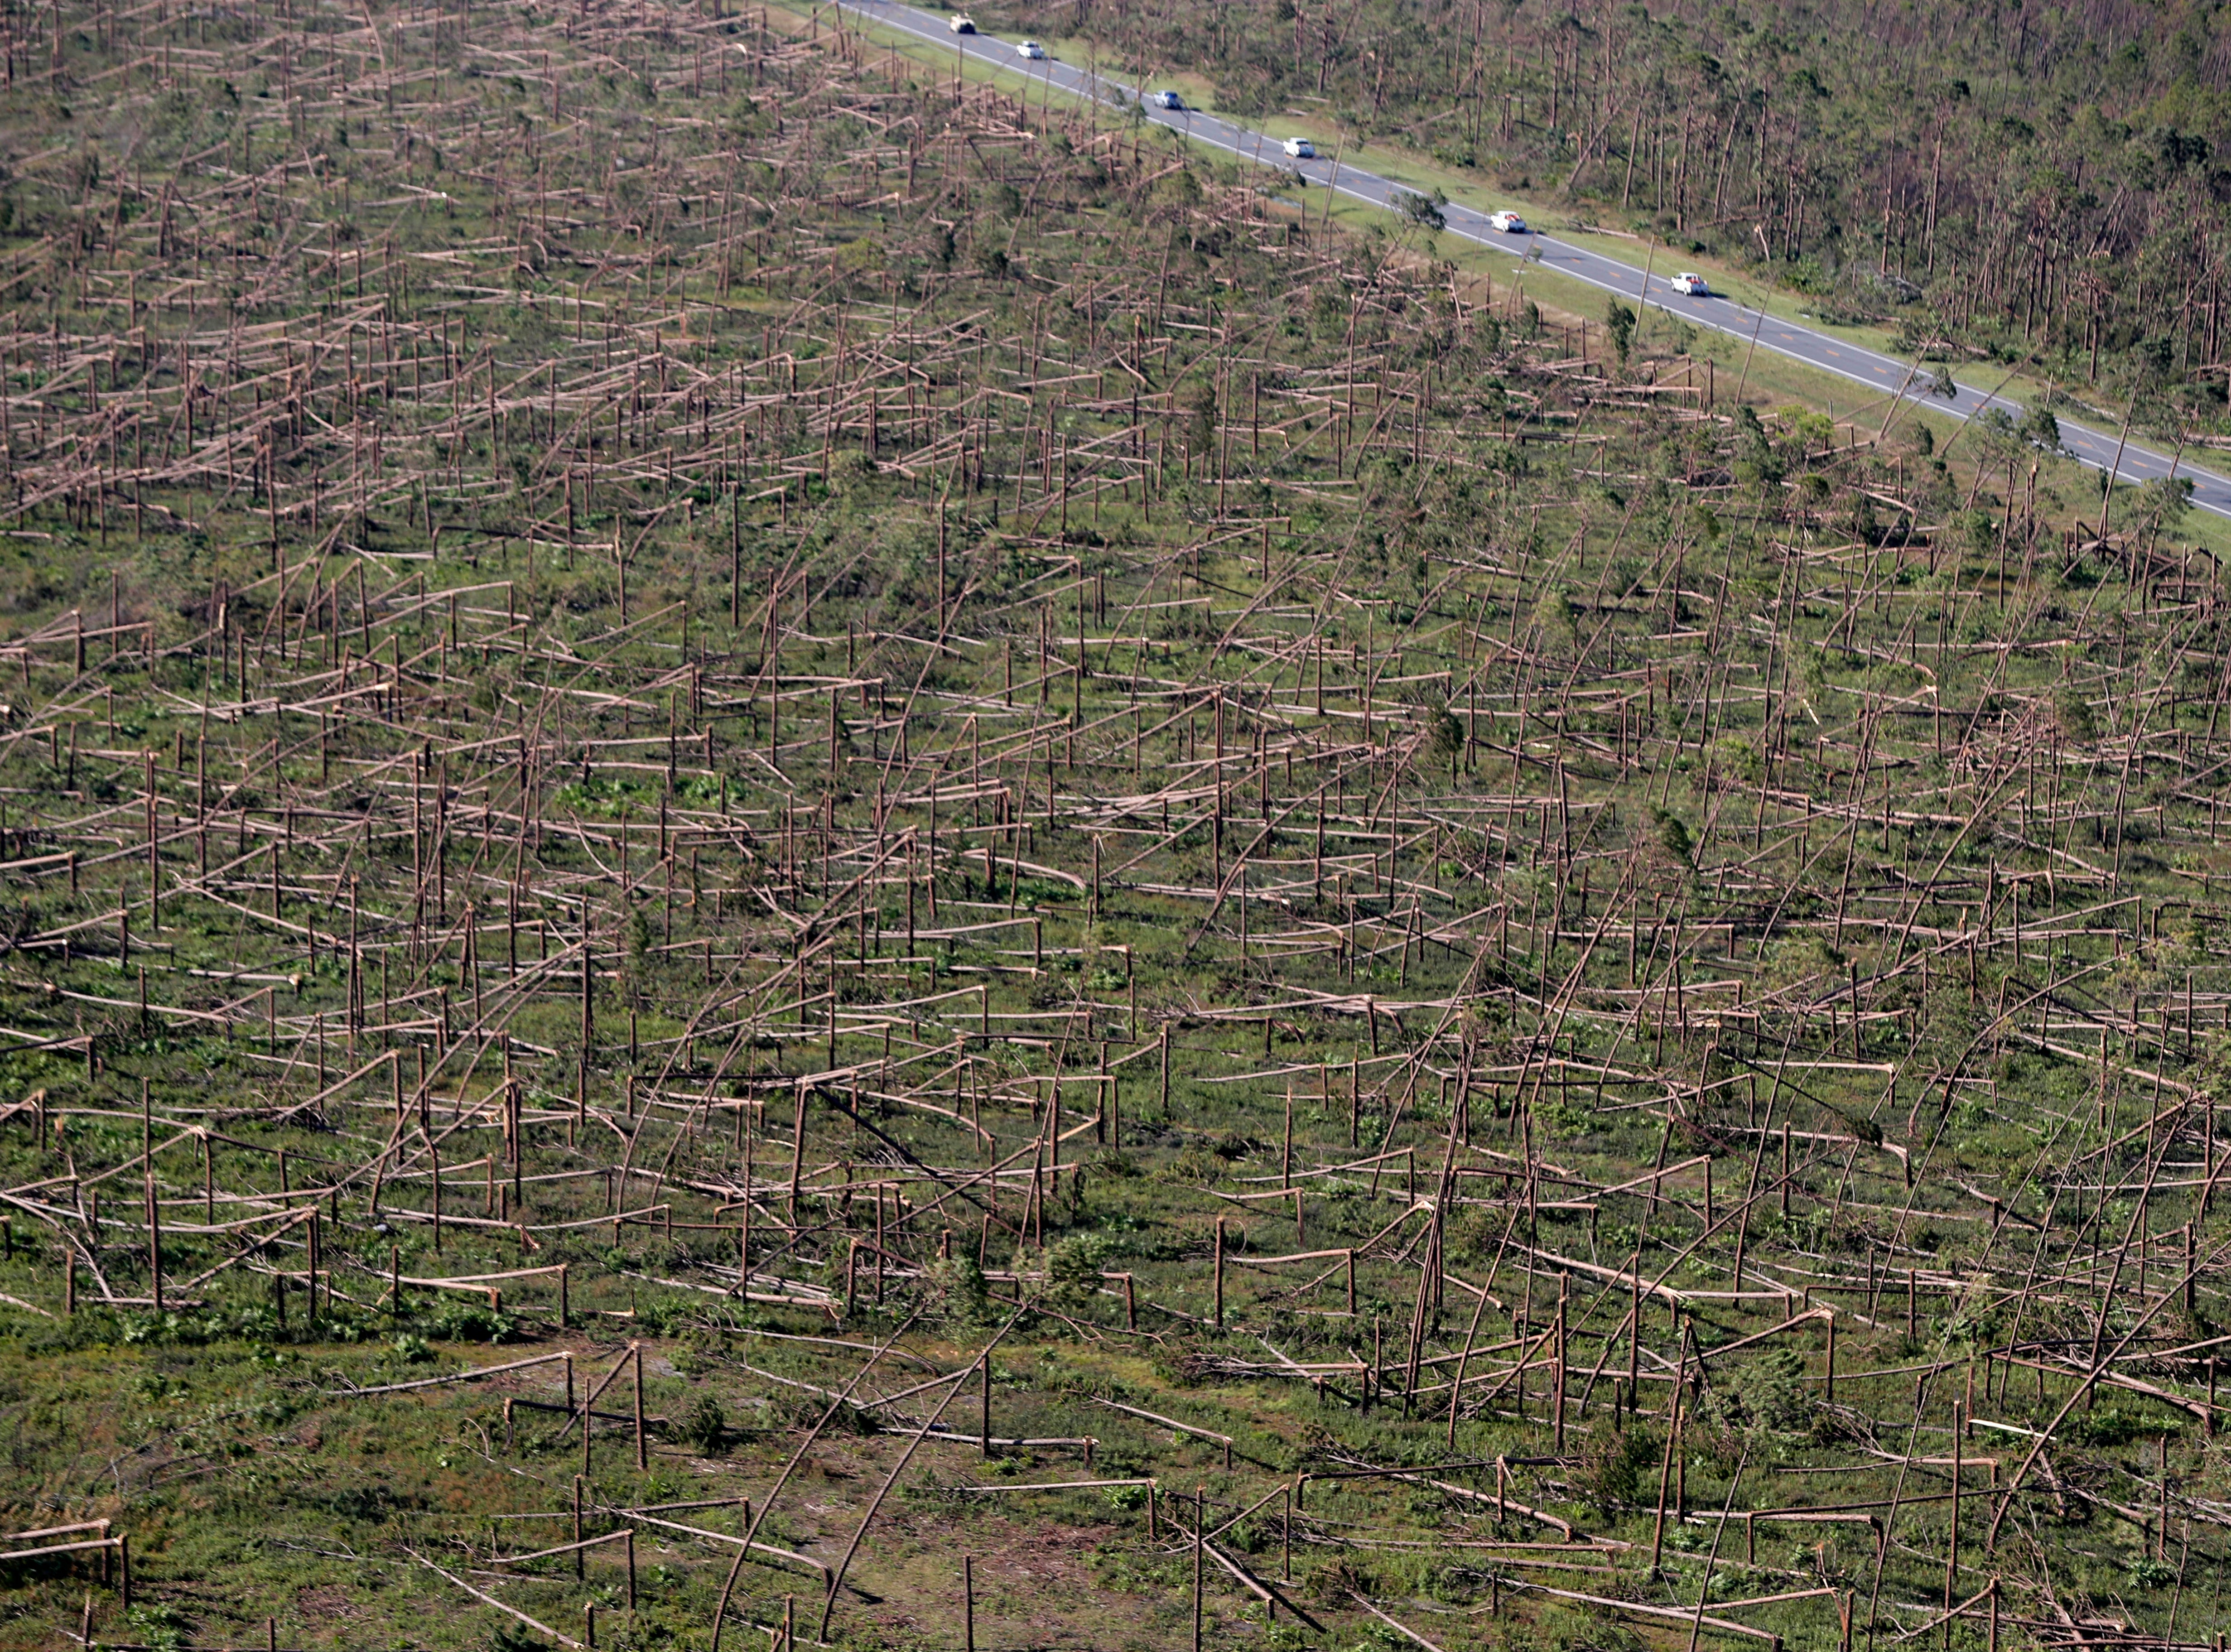 Downed trees are seen from the air on Tyndall Air Force Base in the aftermath of Hurricane Michael near Mexico Beach, Fla., Friday, Oct. 12, 2018.